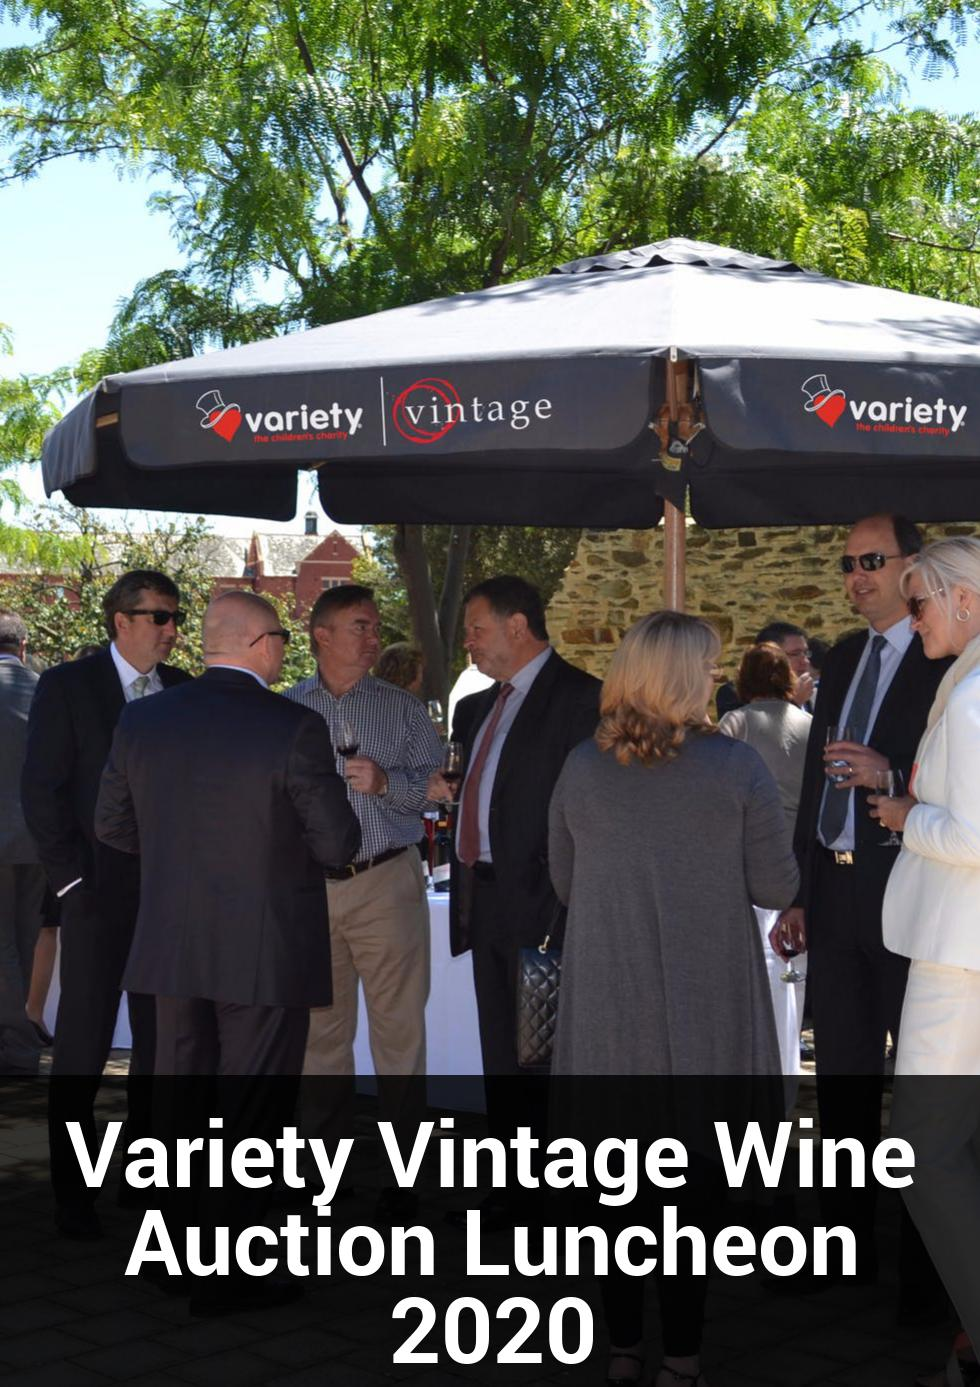 Variety Vintage Wine Auction Luncheon 2020 at National Wine Centre